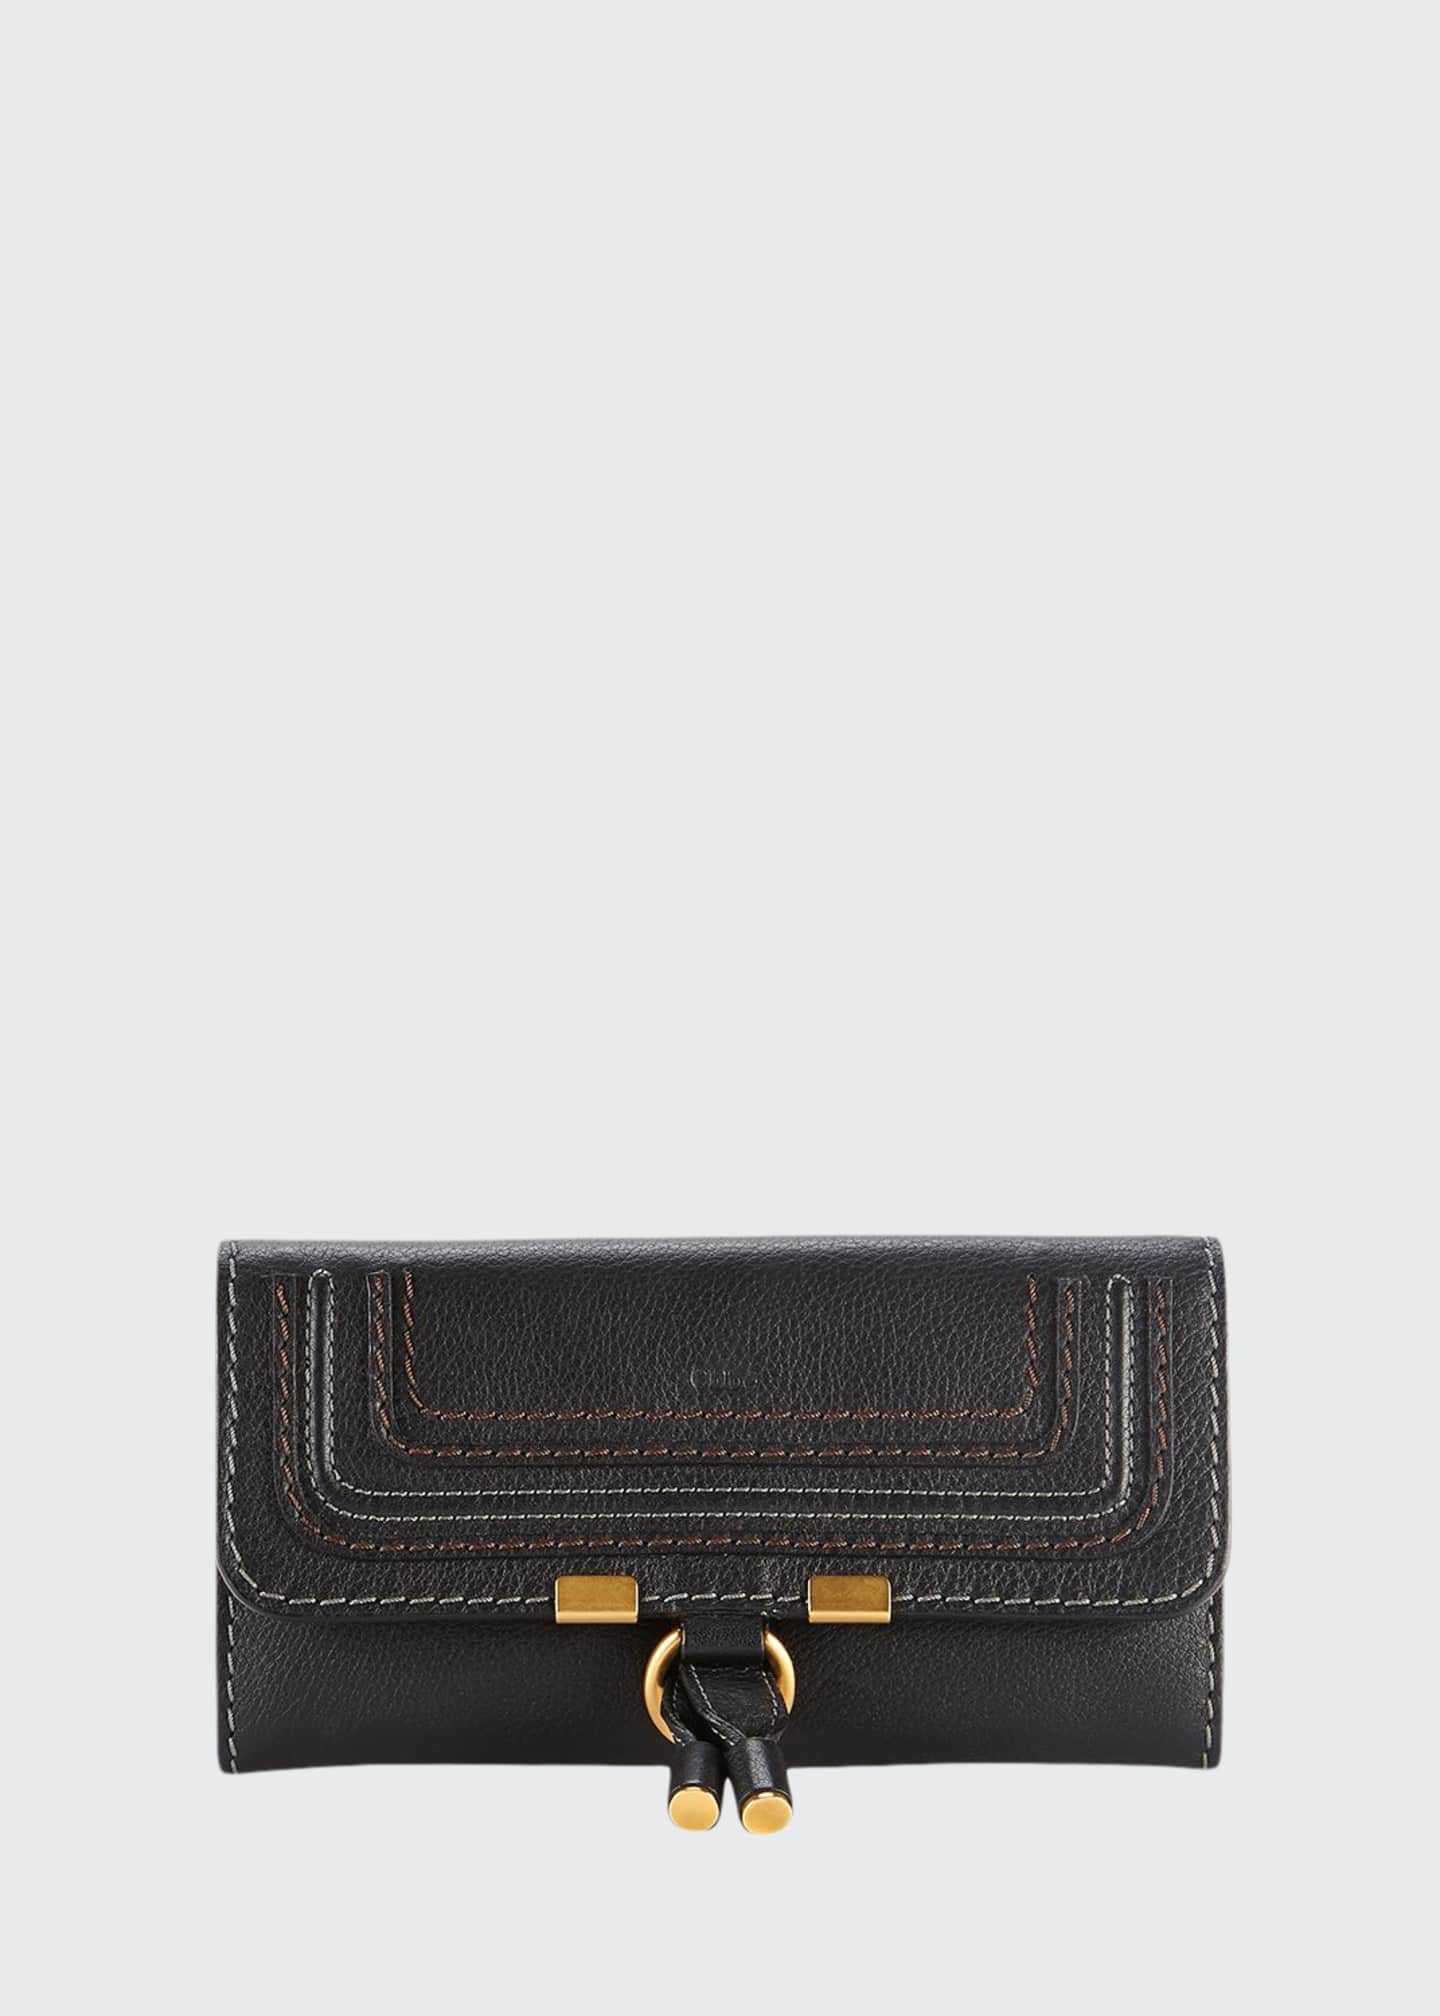 Chloe Marcie Calfskin Zip-Around Wallet, Black